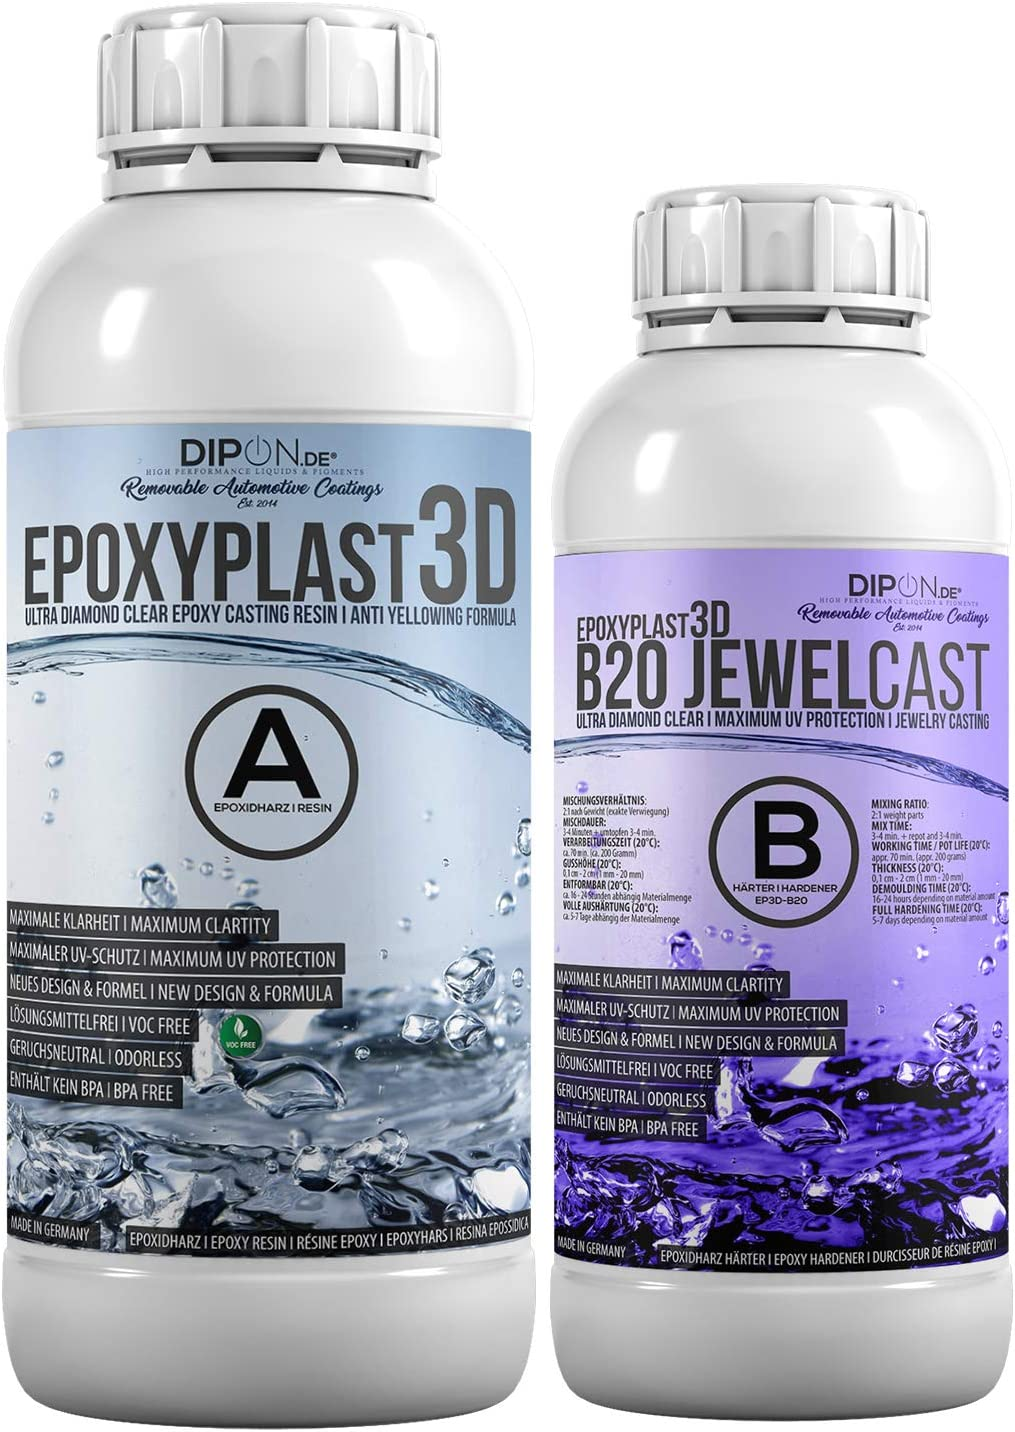 Epoxy Resin Epoxyplast 3d B20 Jewel Cast 1 5 Kg For Resin Art I Ultra Diamond Clear I Excellent Uv Protection I Jewellery I Casting Resin I Crystal Clear I Mould Building I